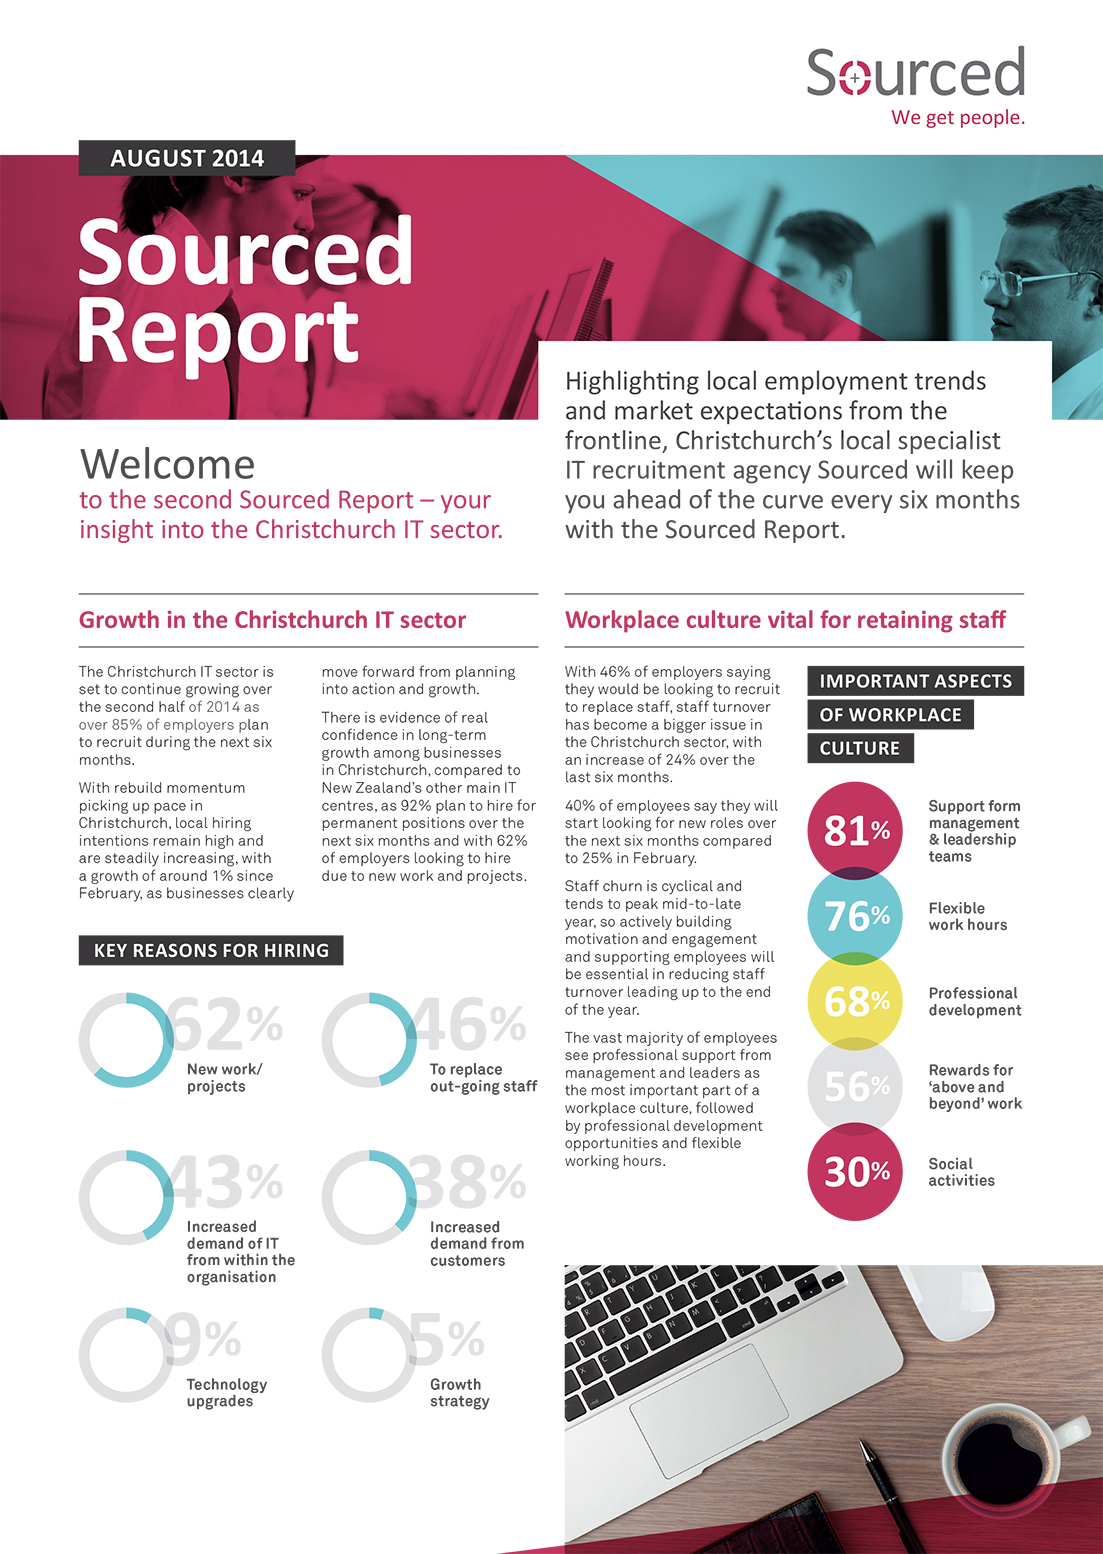 Sourced Report Page 1 | August 2014 Infographic